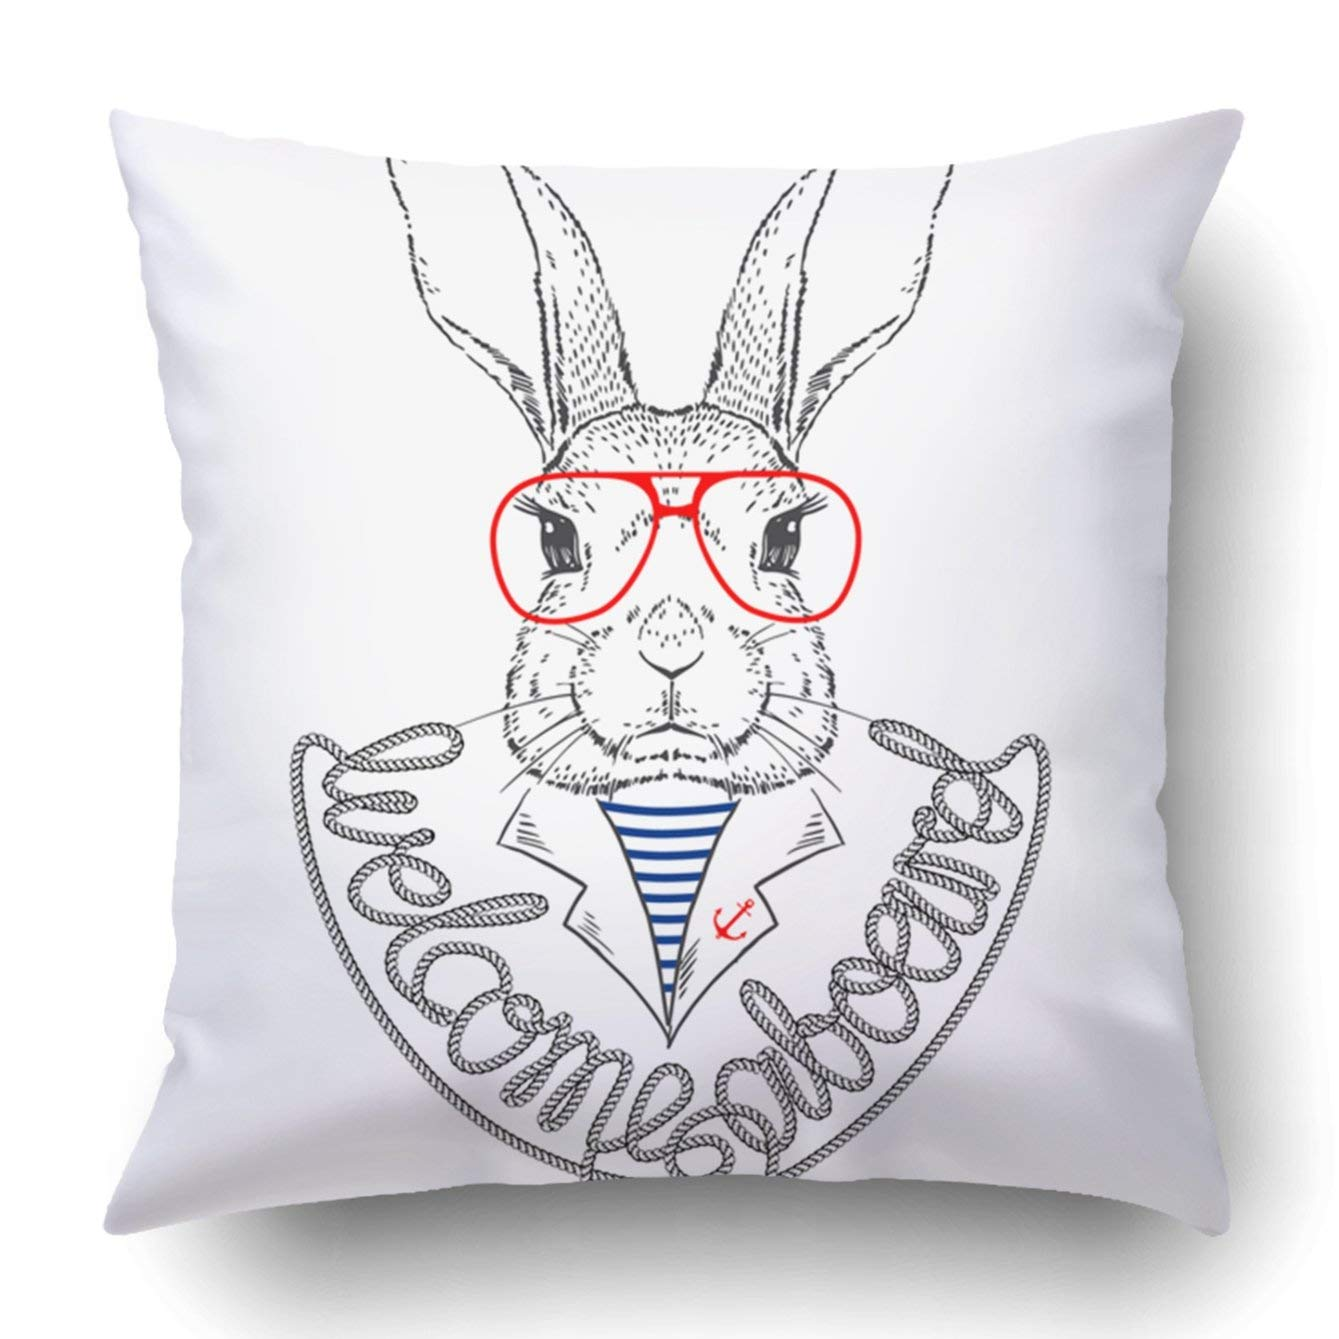 WOPOP Bunny Sailor Isolated on White Pillowcase Throw Pillow Cover Case 20x20 inches